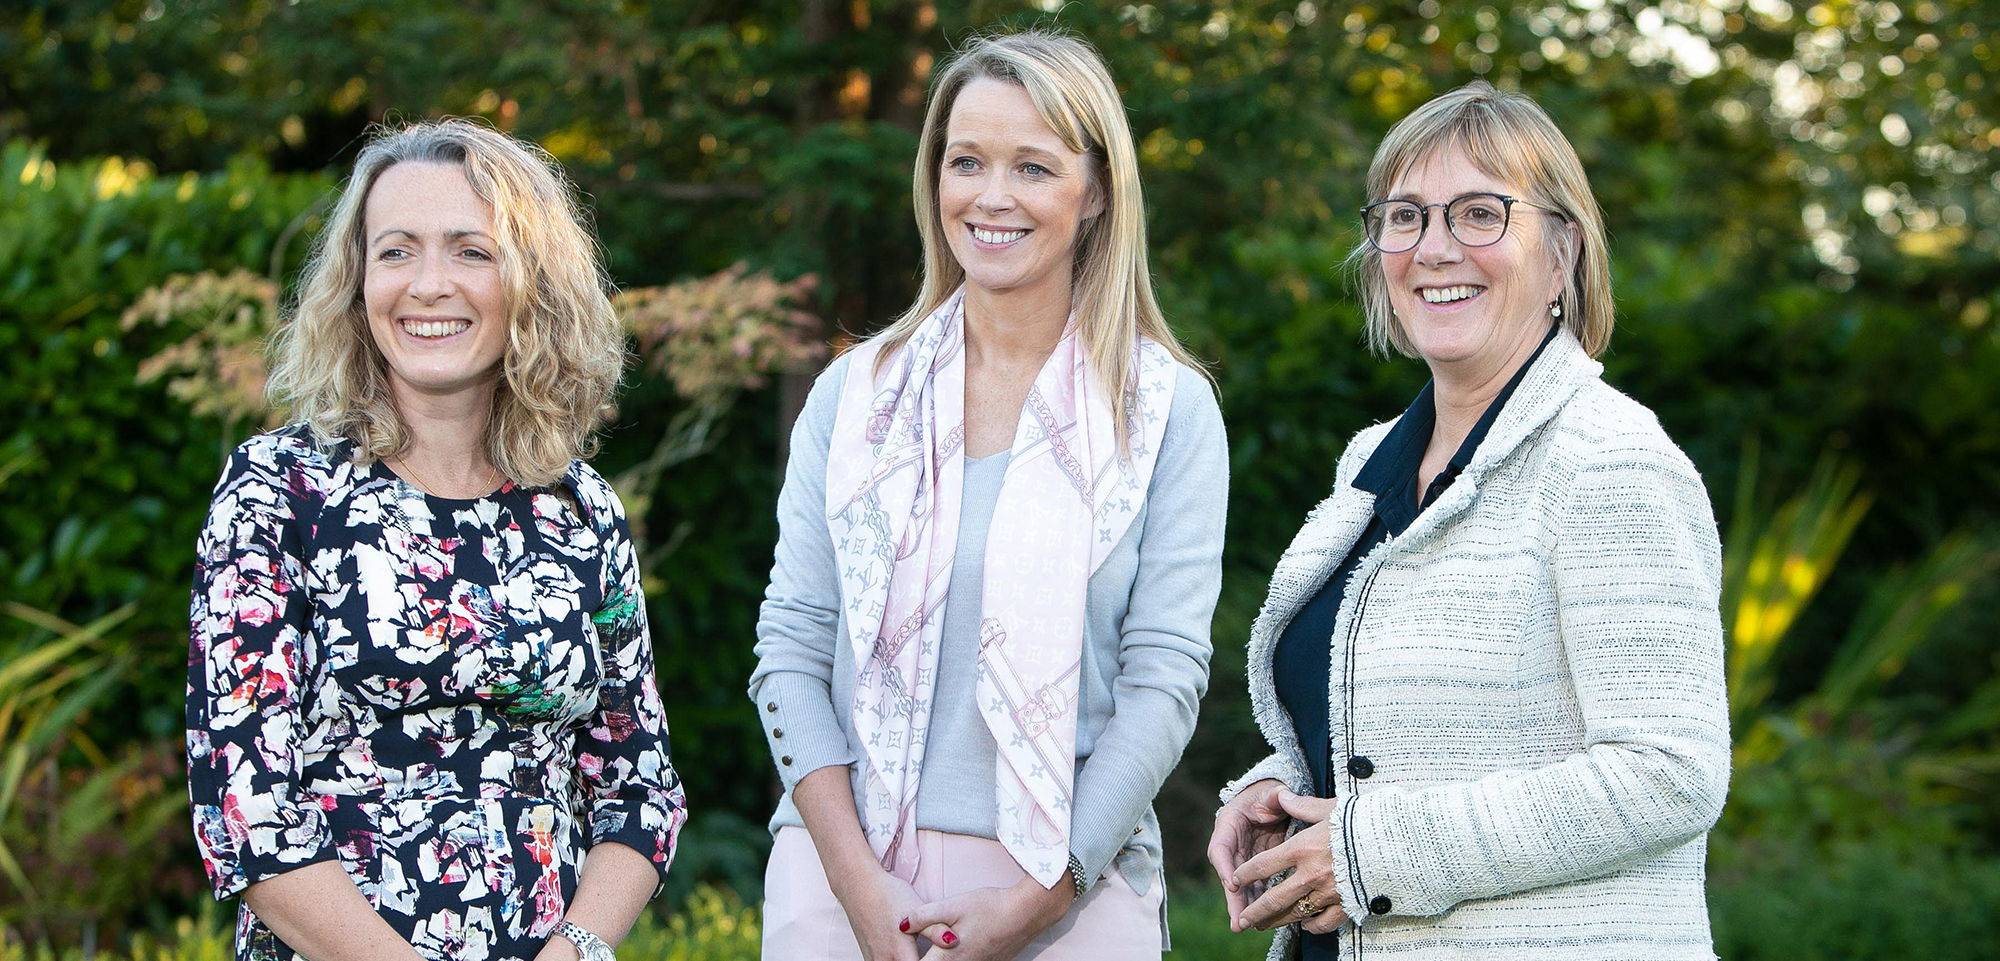 Pictured (L to R) are KPMG Partner Olivia Lynch Mary O'Brien, CEO videoDoc and Julie Sinnamon, CEO Enterprise Ireland.